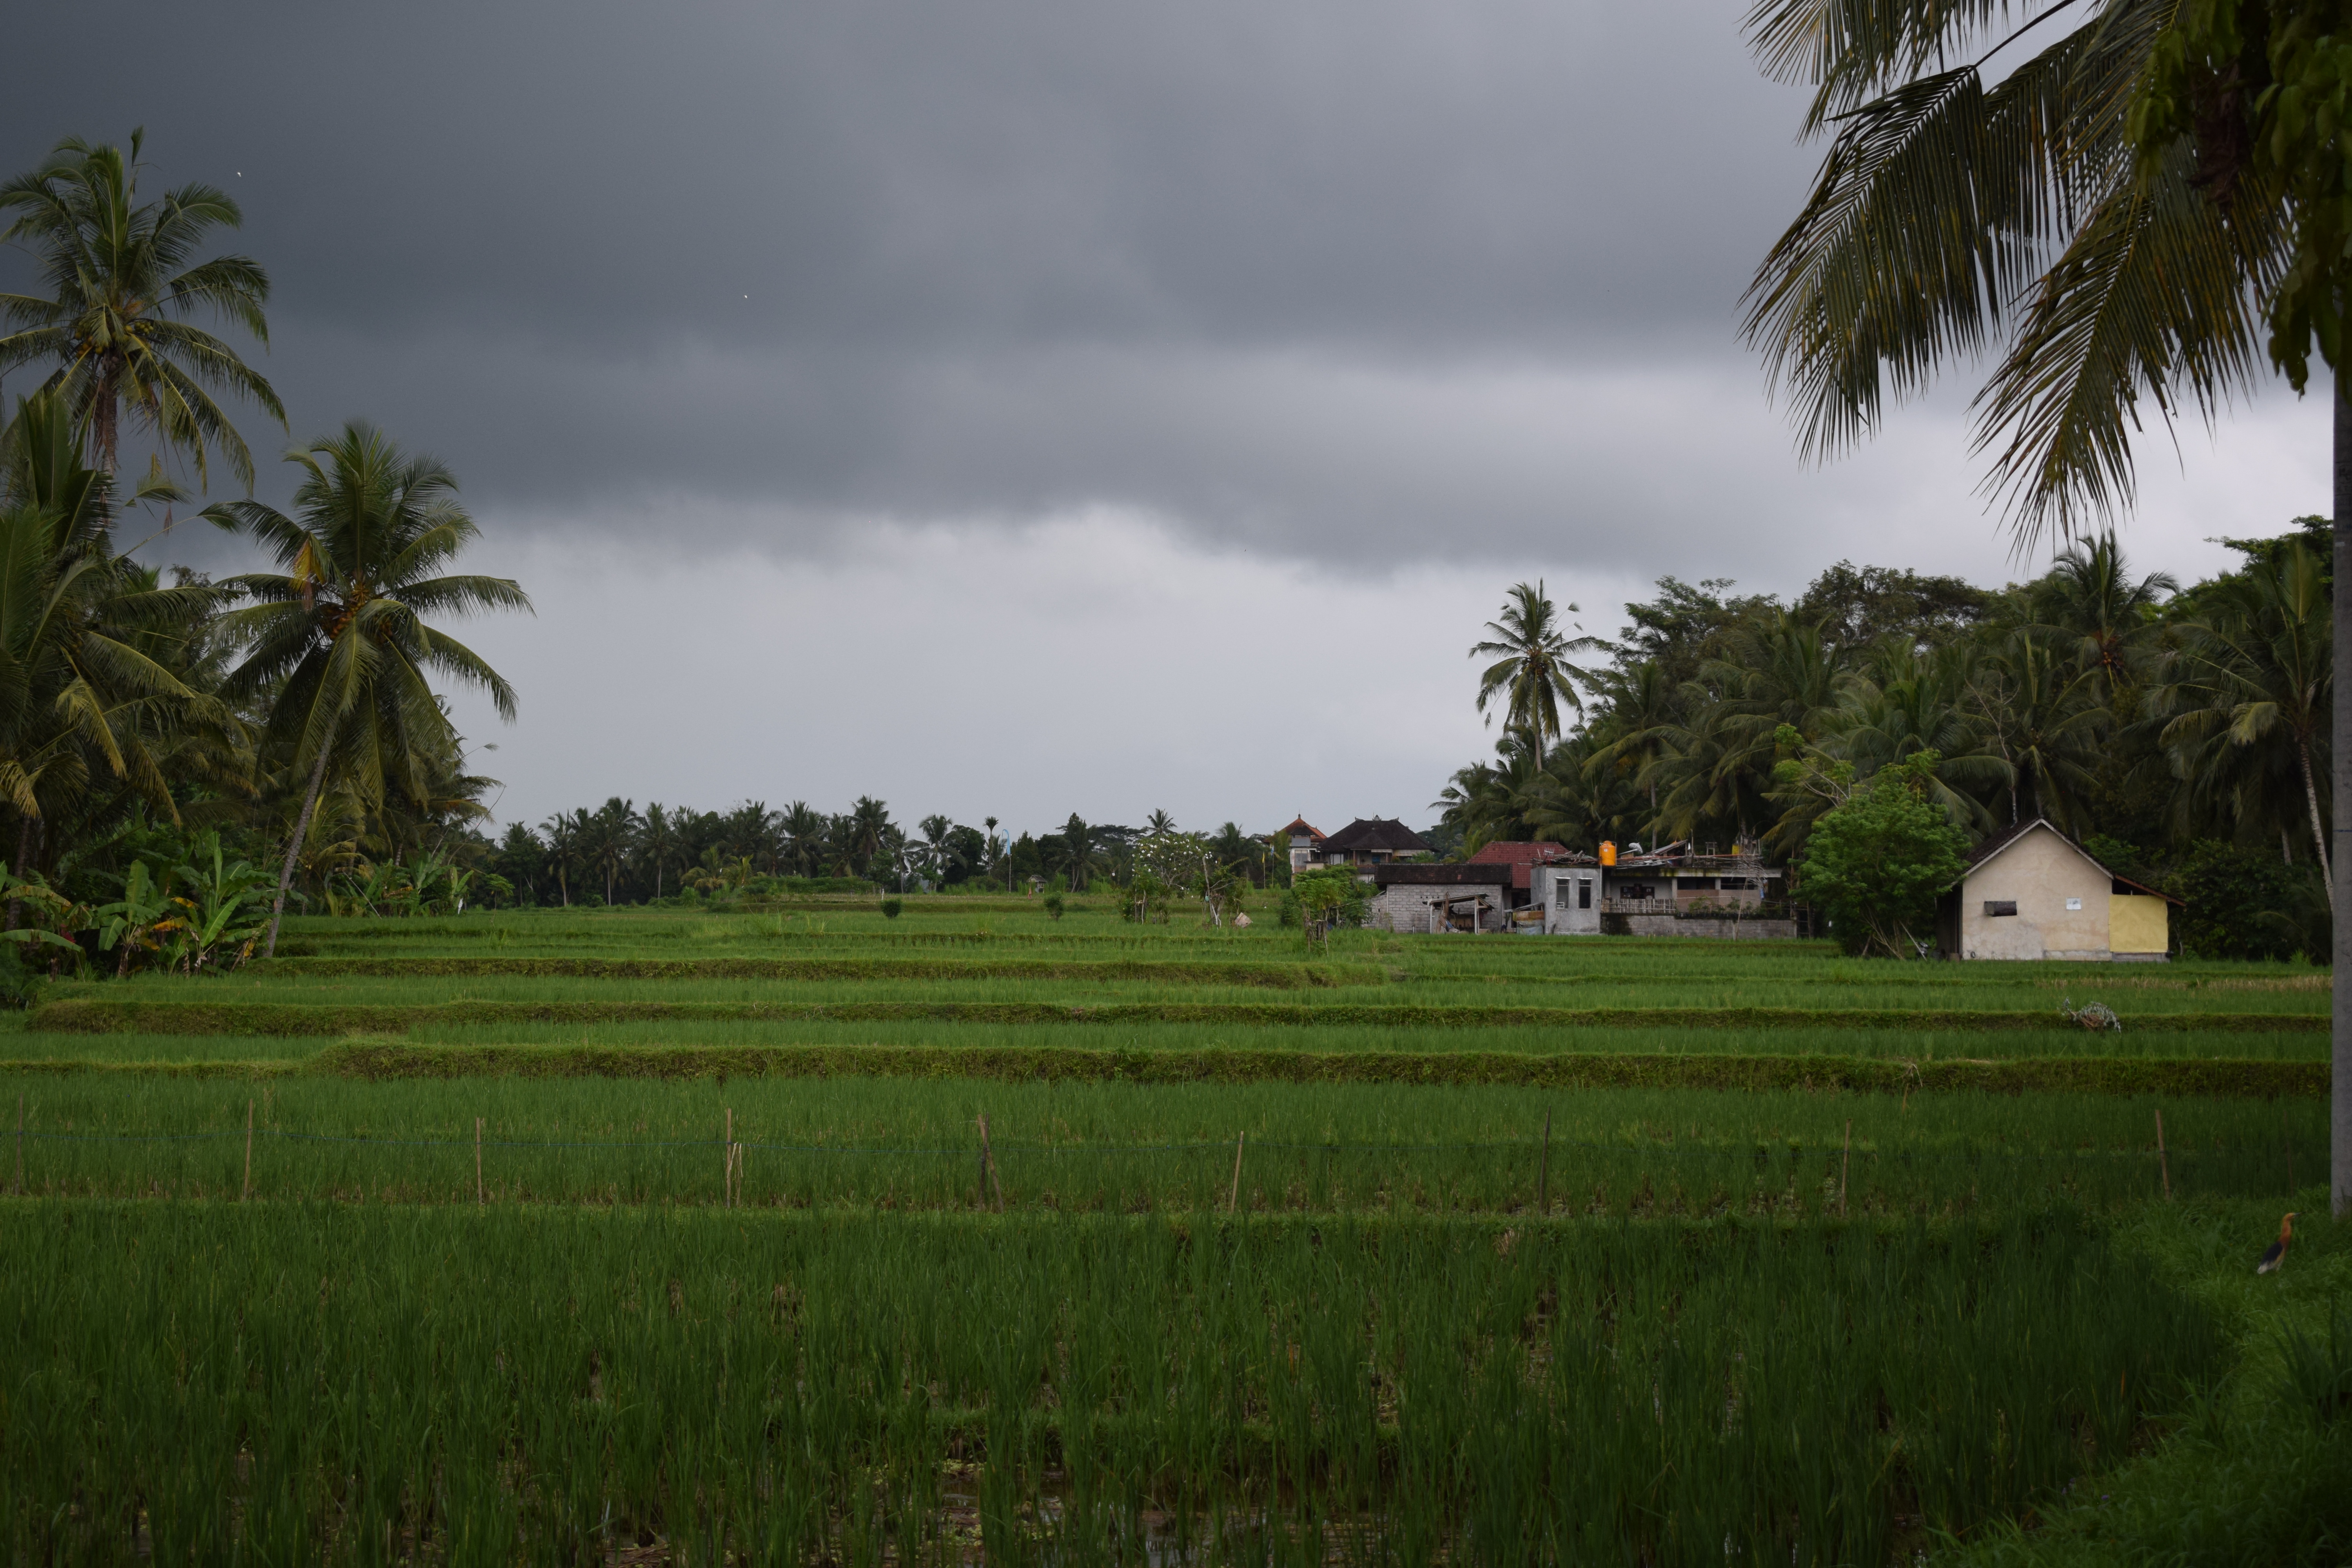 Rain Storm with Dark Clouds over Rice Paddy in Ubud Bali